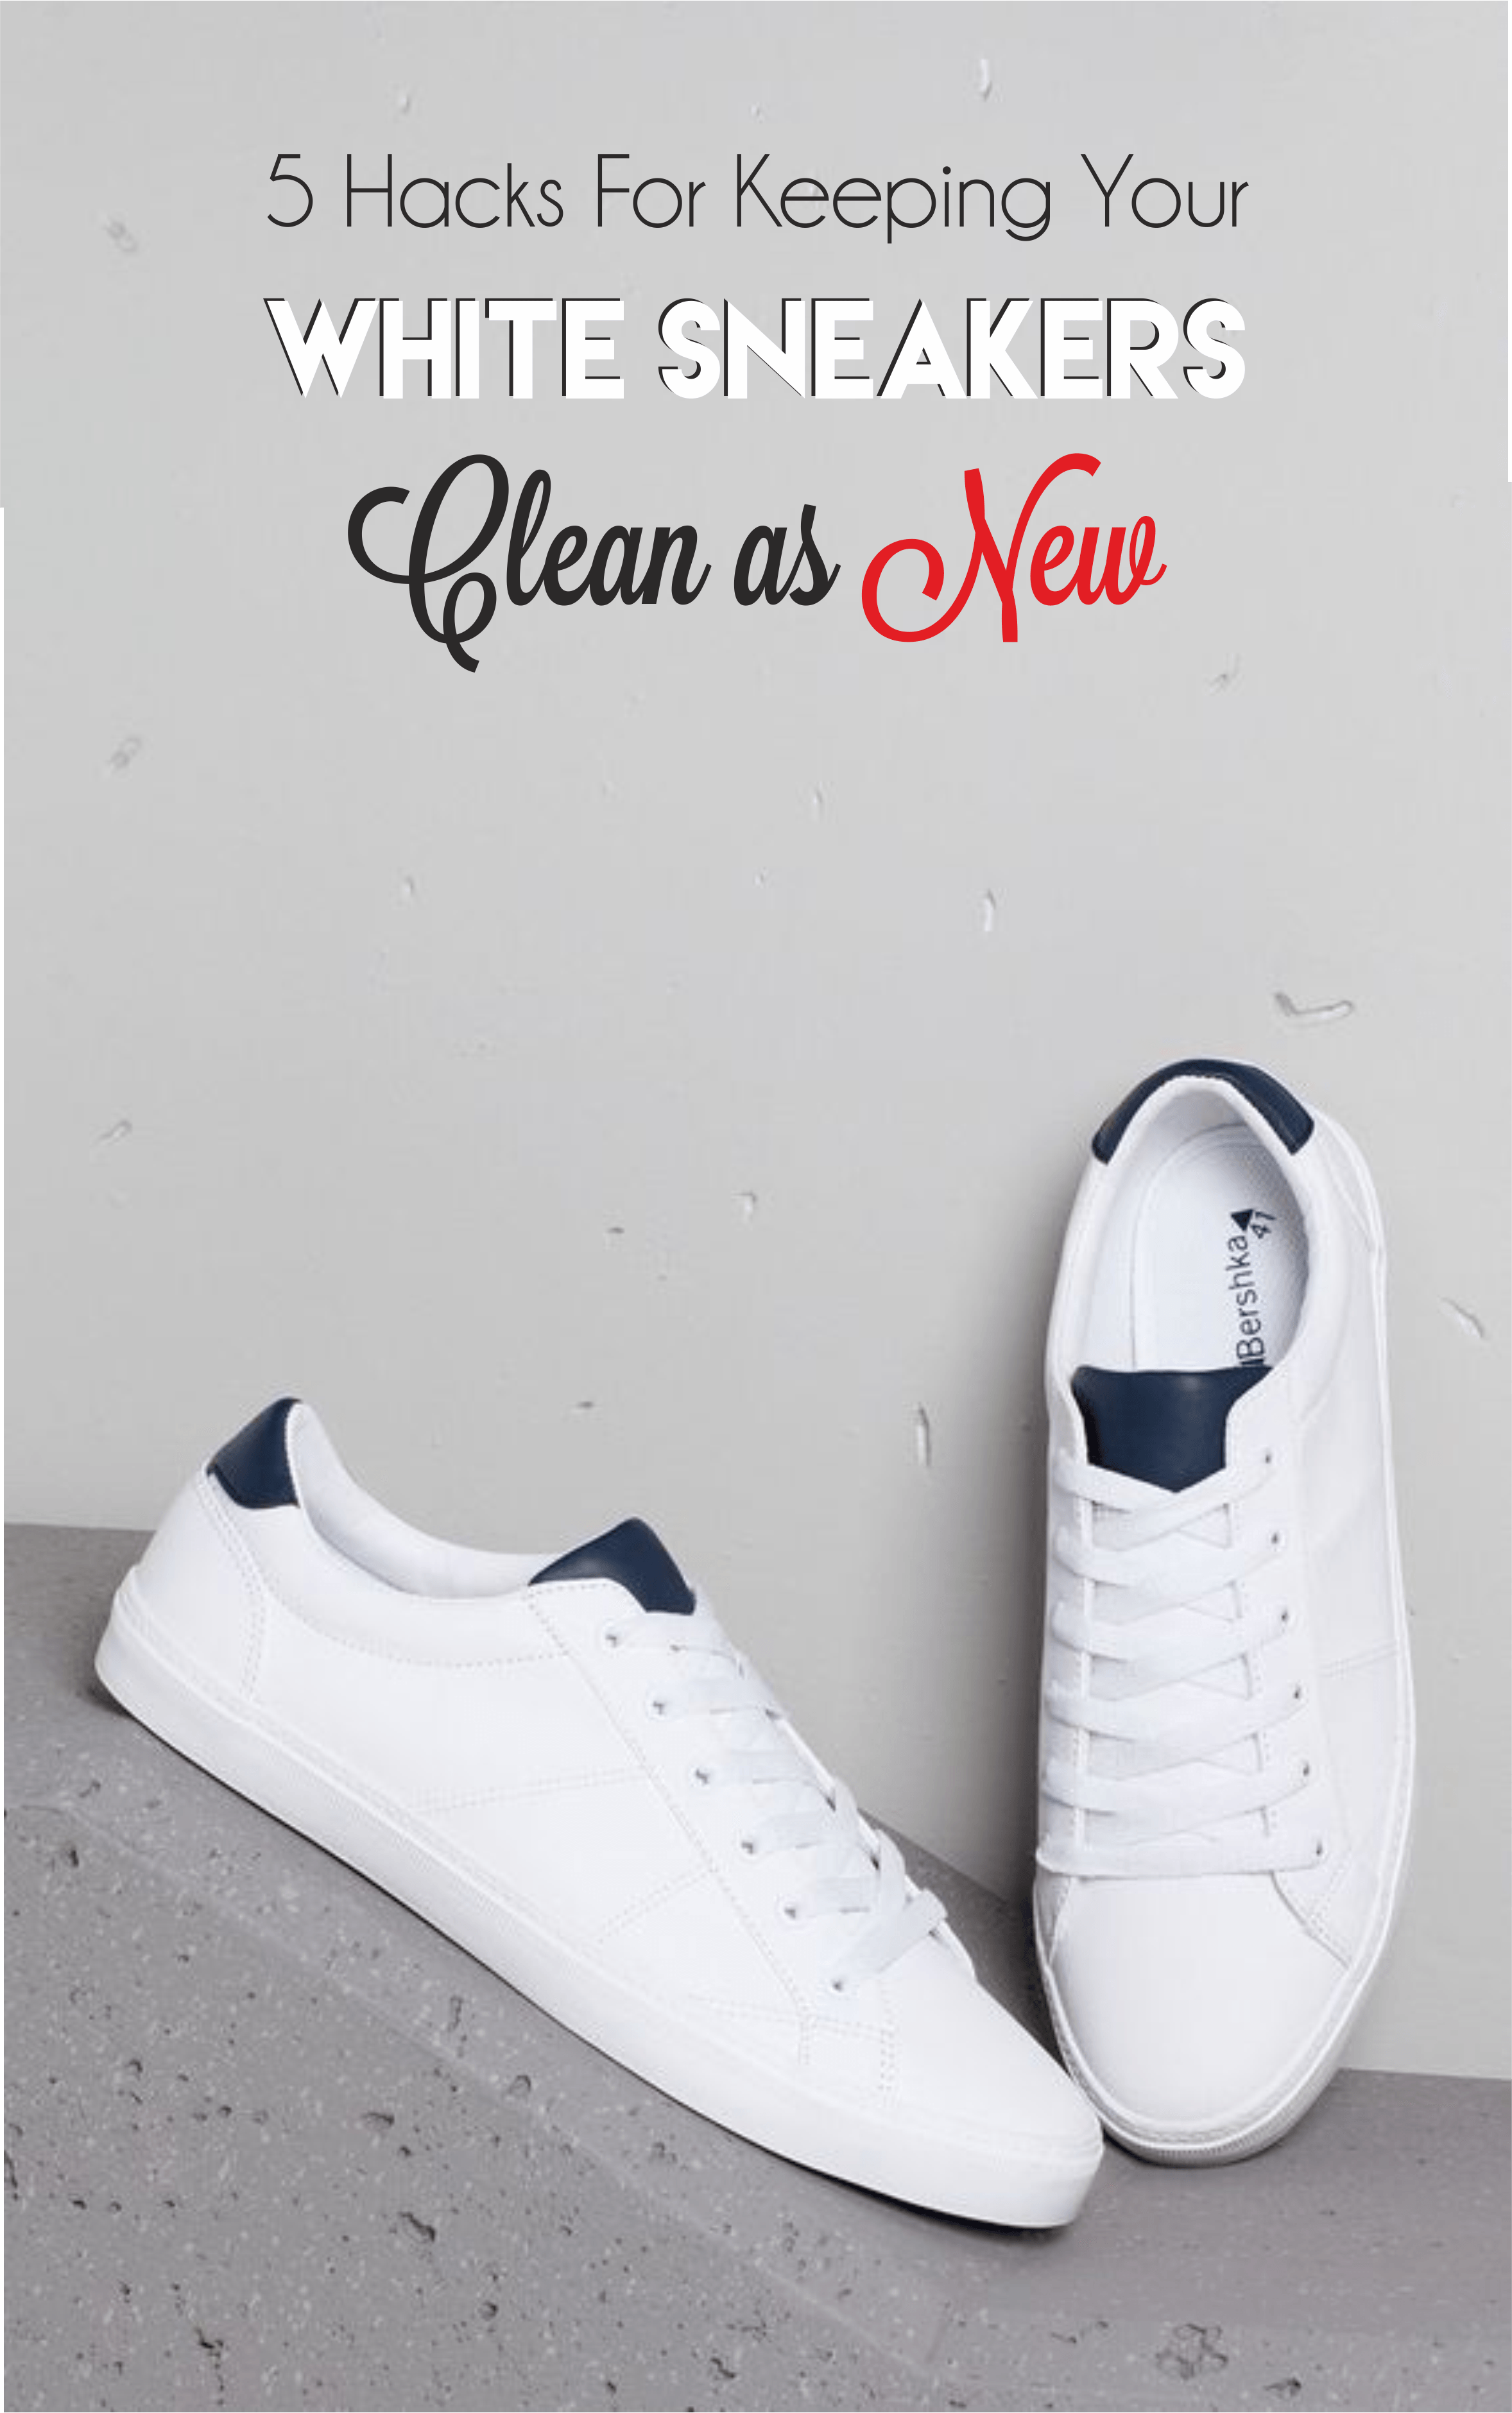 5 Tips For Keeping Your White Sneakers Clean | White